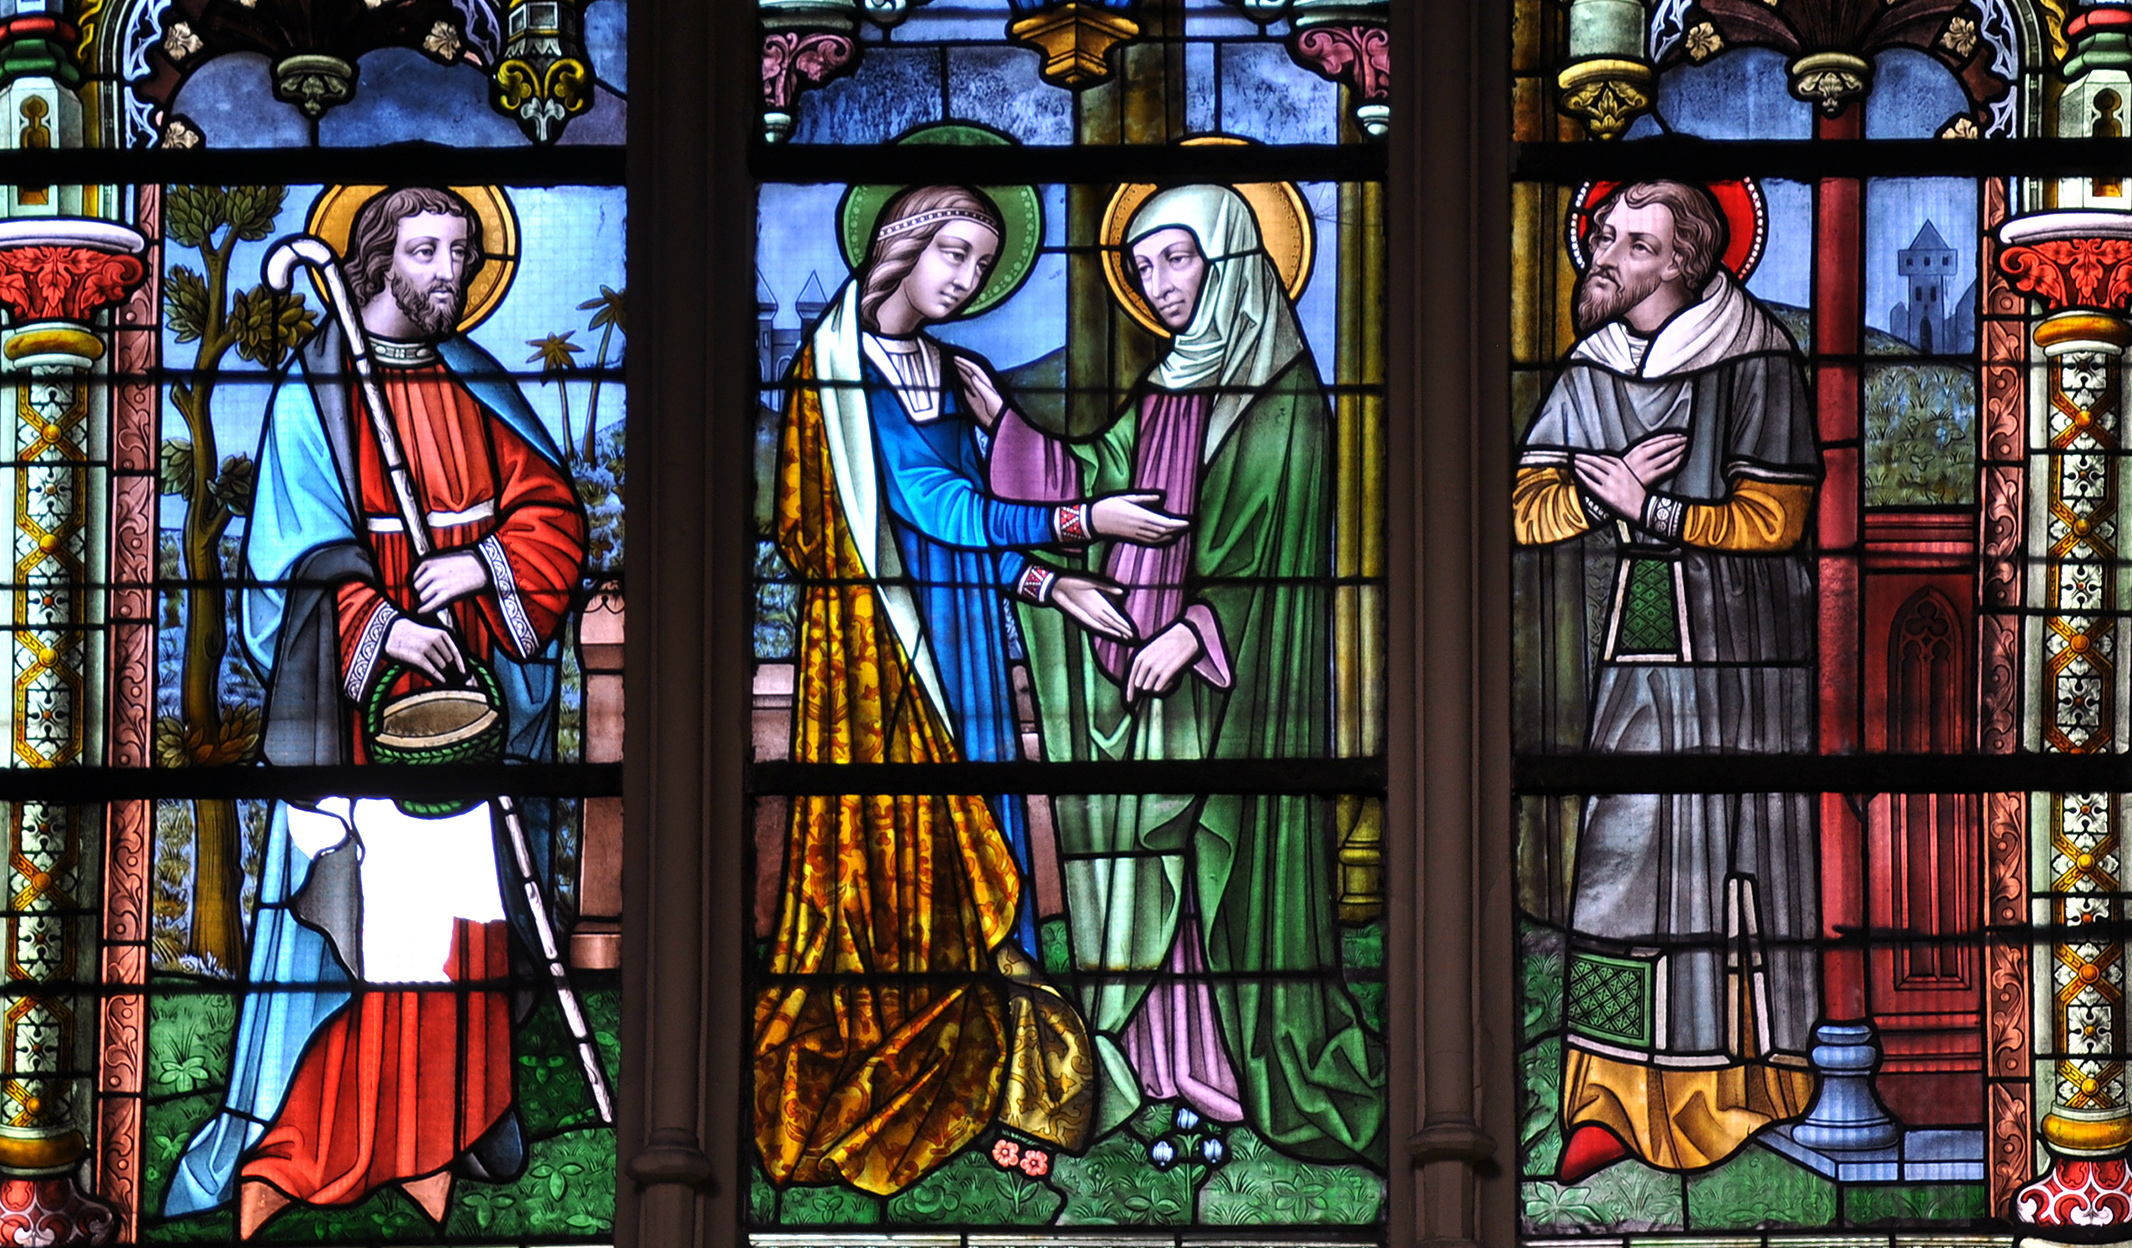 A stained glass window in Saint Jacques's Church